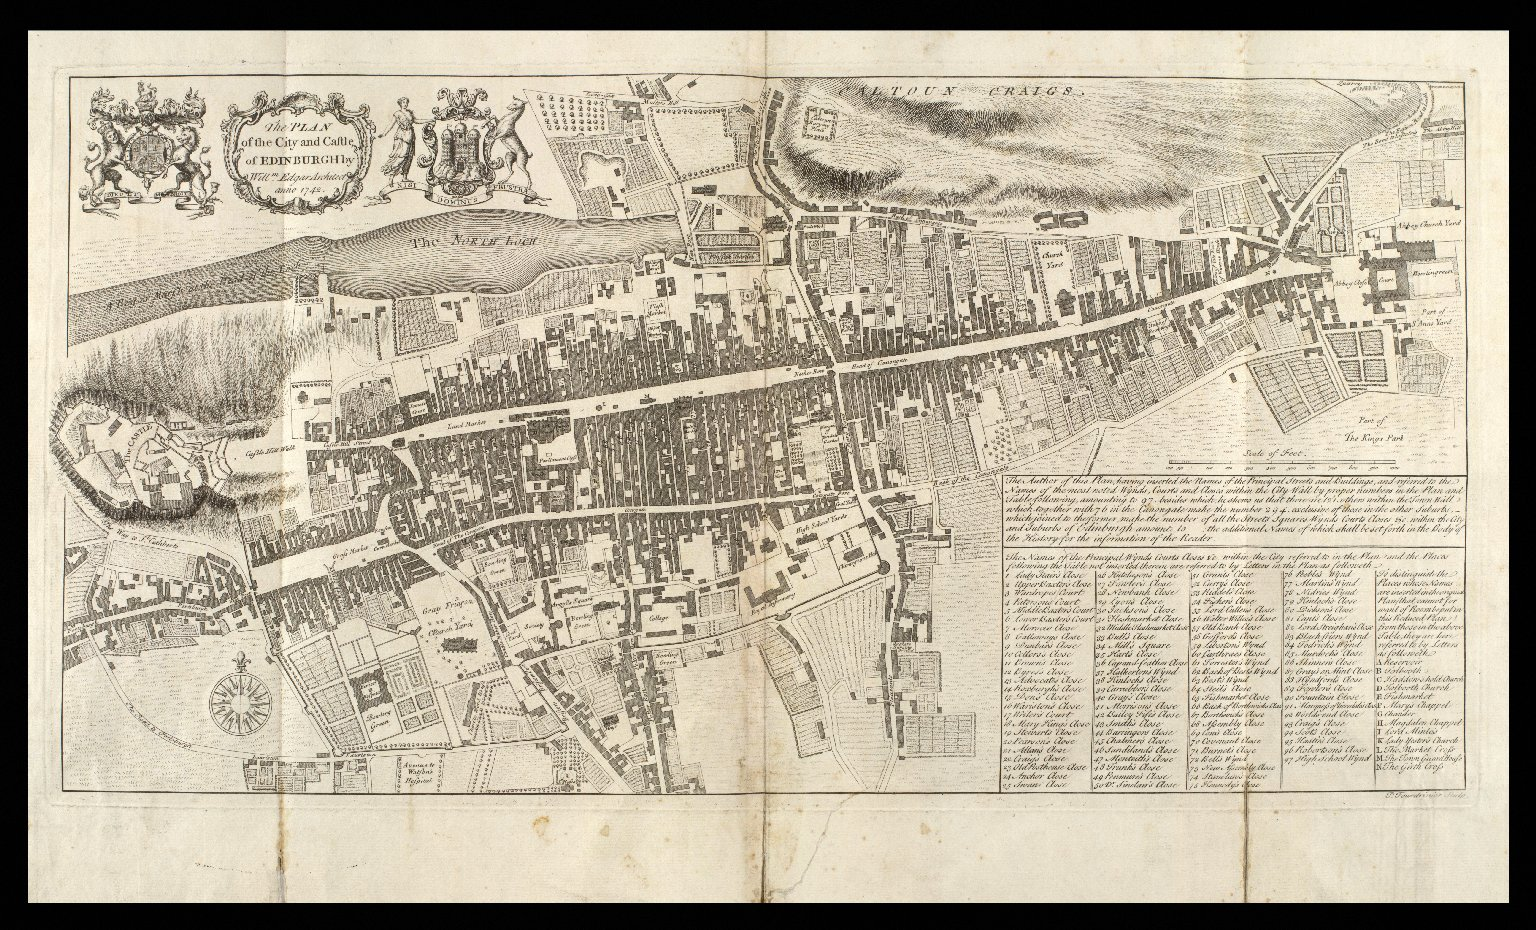 The PLAN of the City and Castle of EDINBURGH [1 of 1]